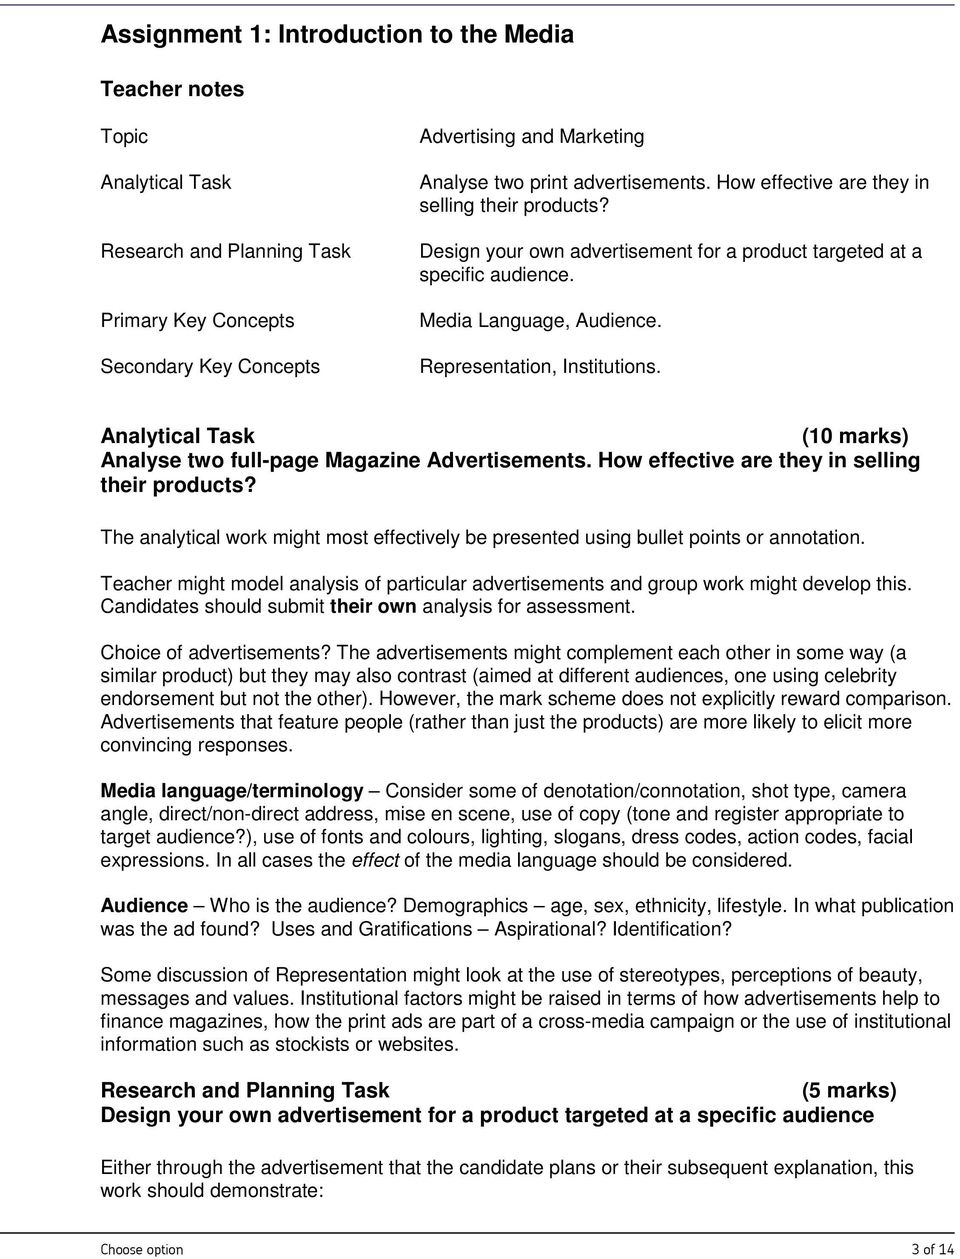 Analytical Task (10 marks) Analyse two full-page Magazine Advertisements. How effective are they in selling their products?